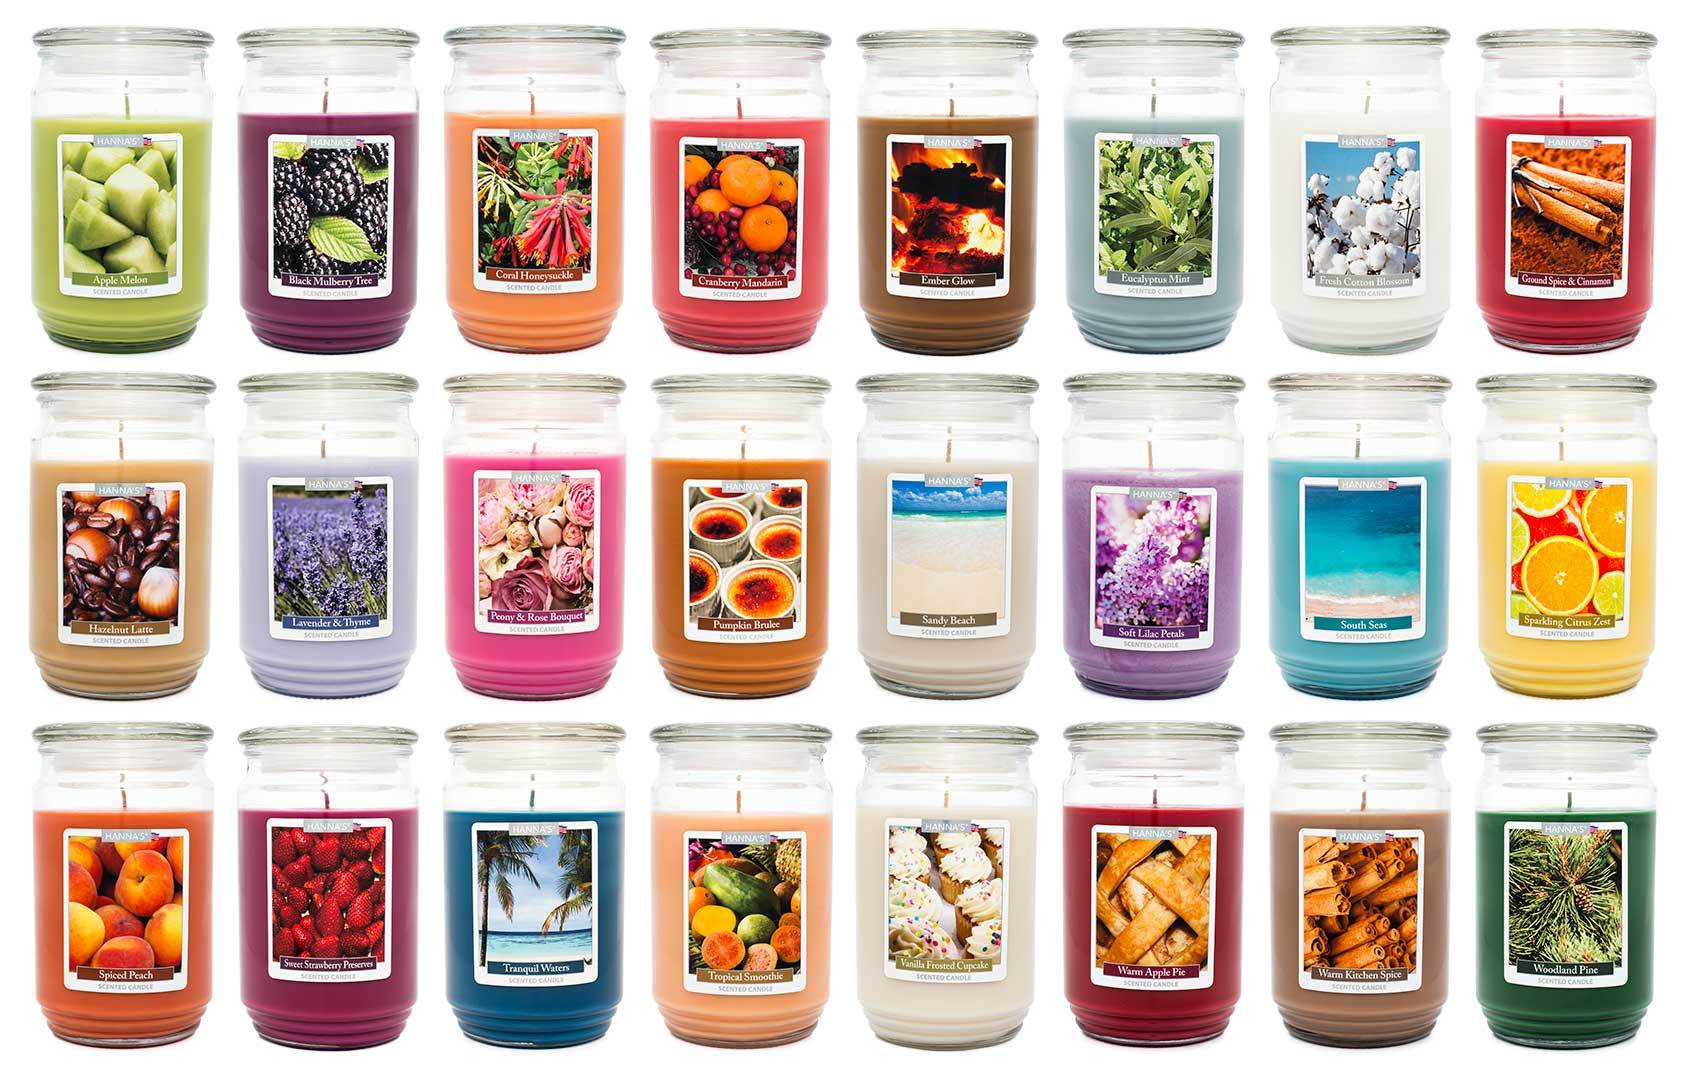 Fresh Cotton Blossom Scented Large Candle Candles Candlemart.com $ 12.99